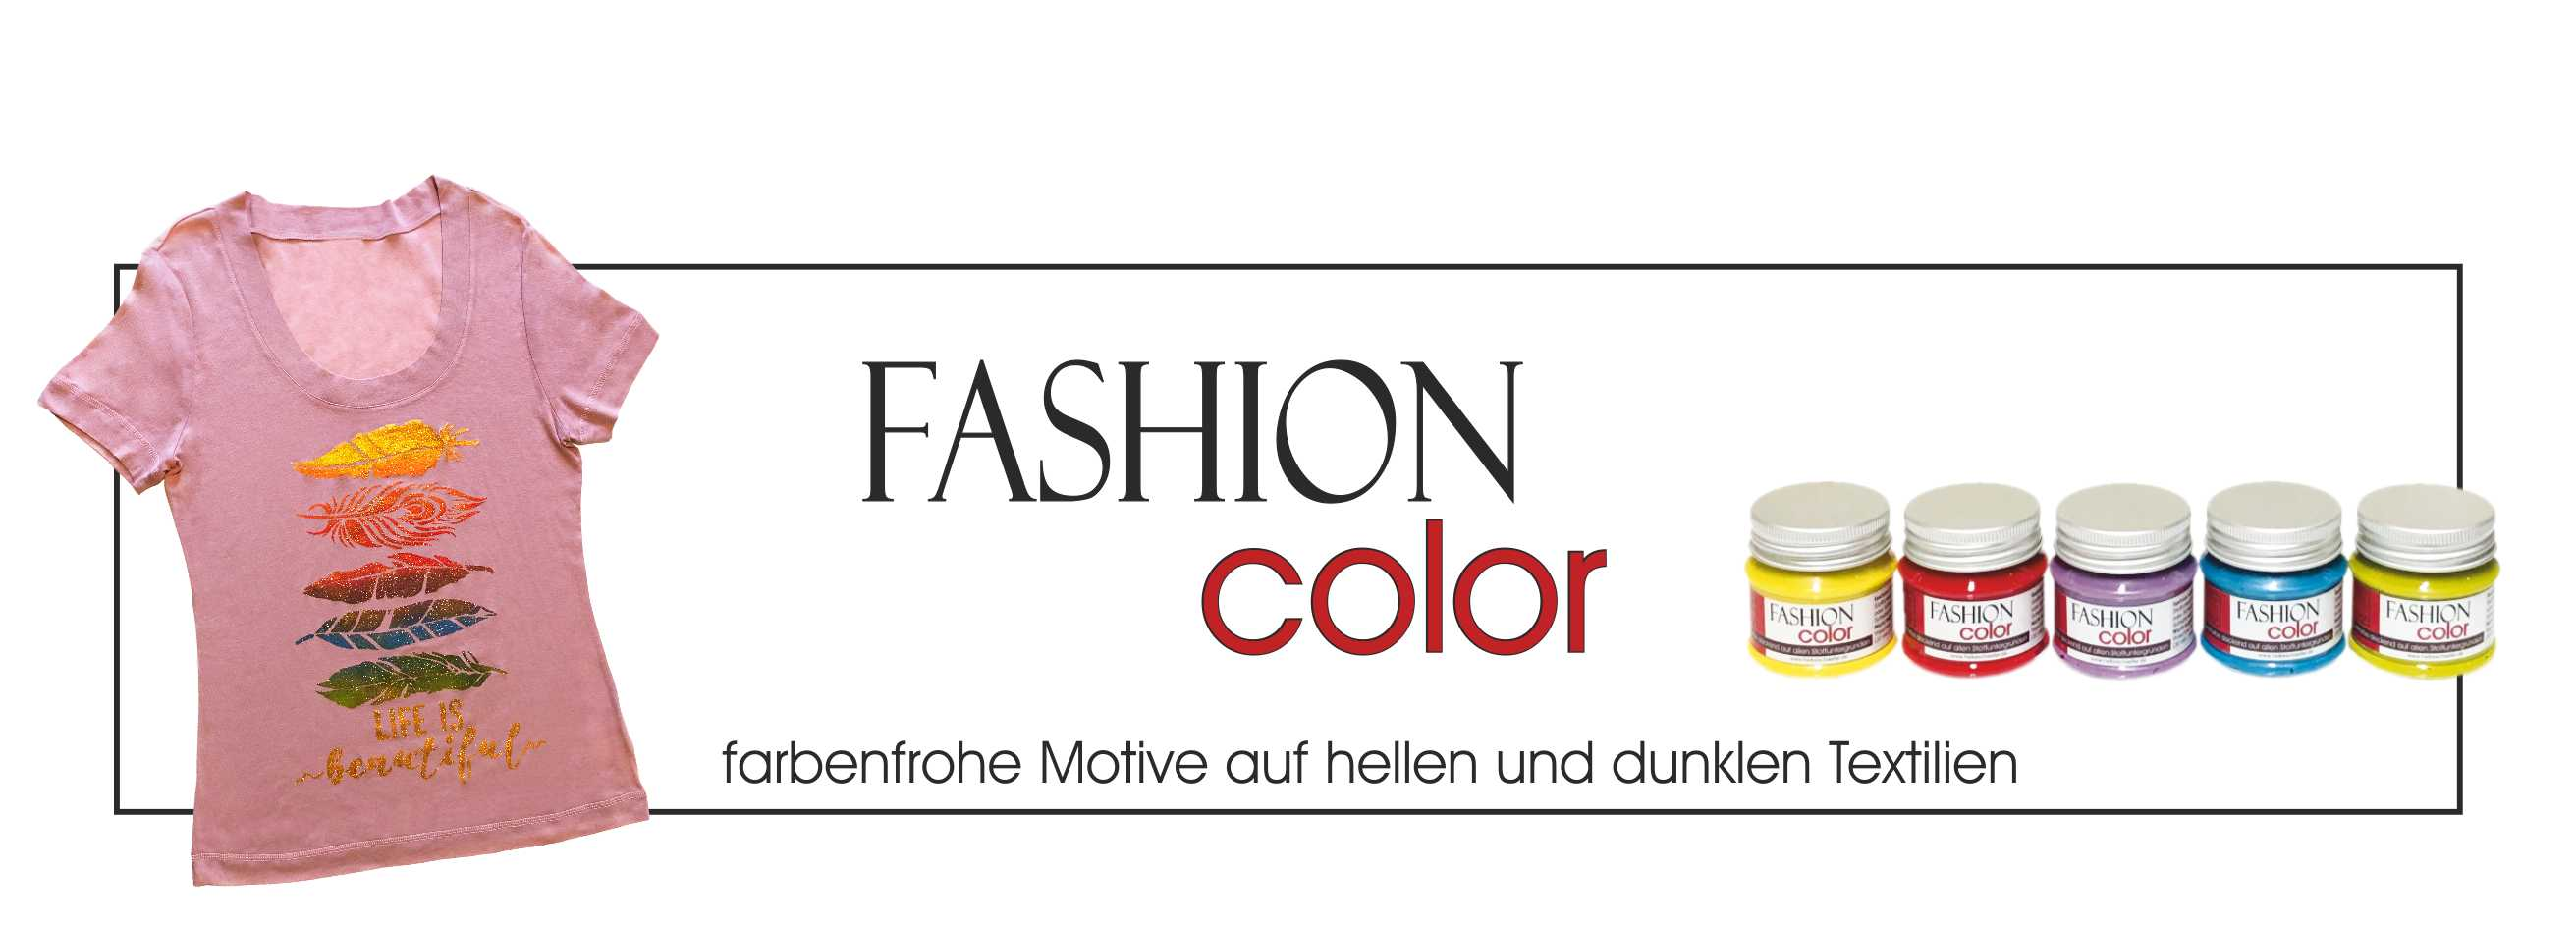 Textilfarbe - Fashion Color